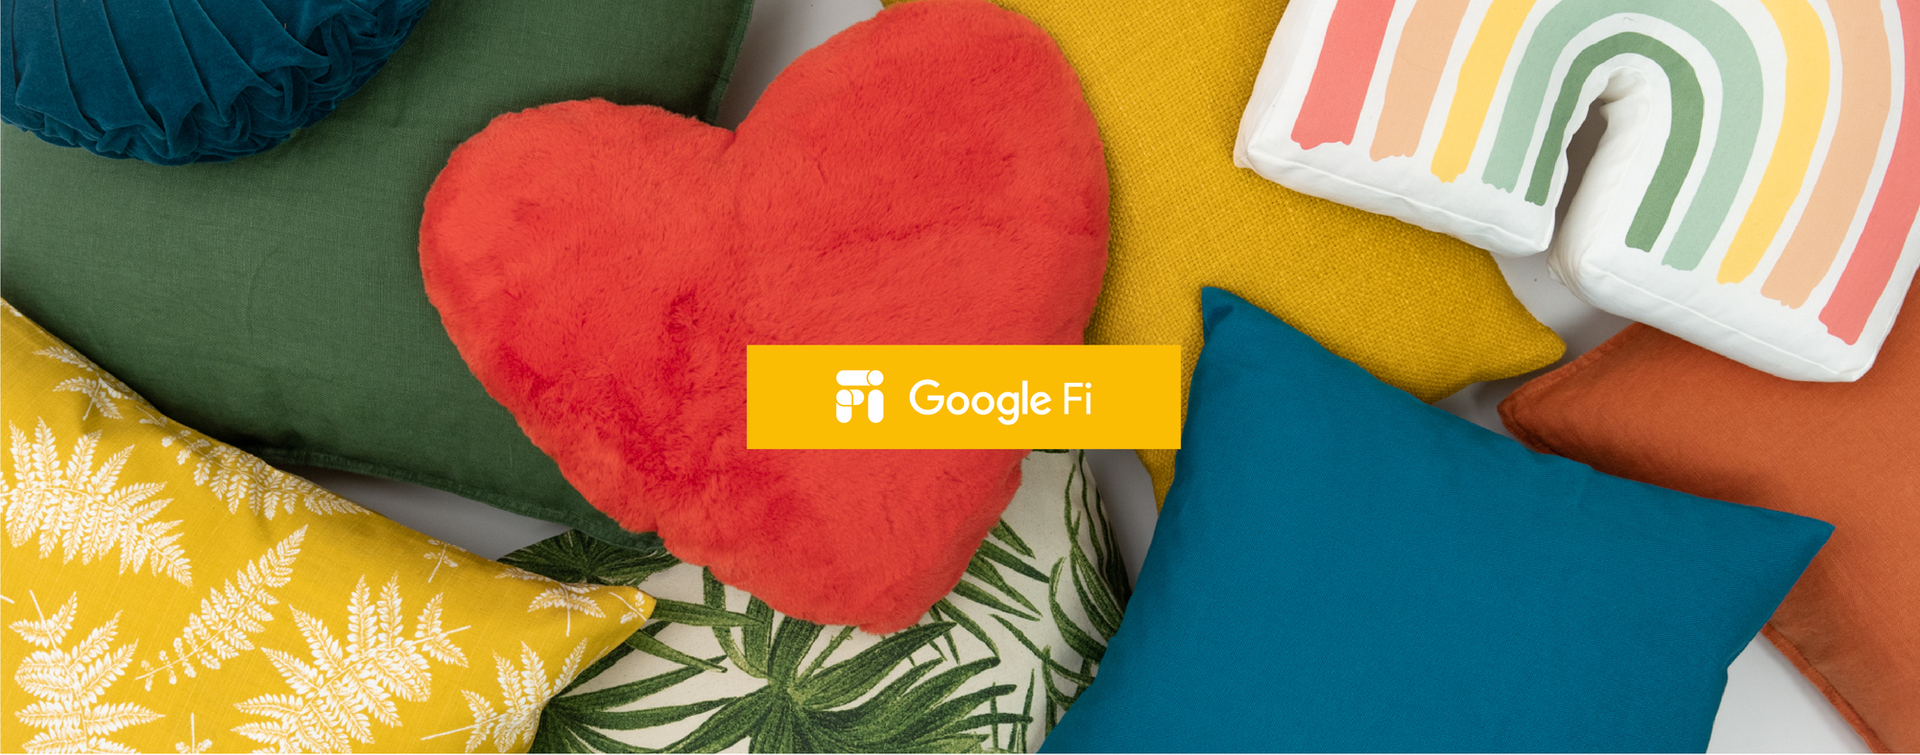 Google Fi - Less Is More